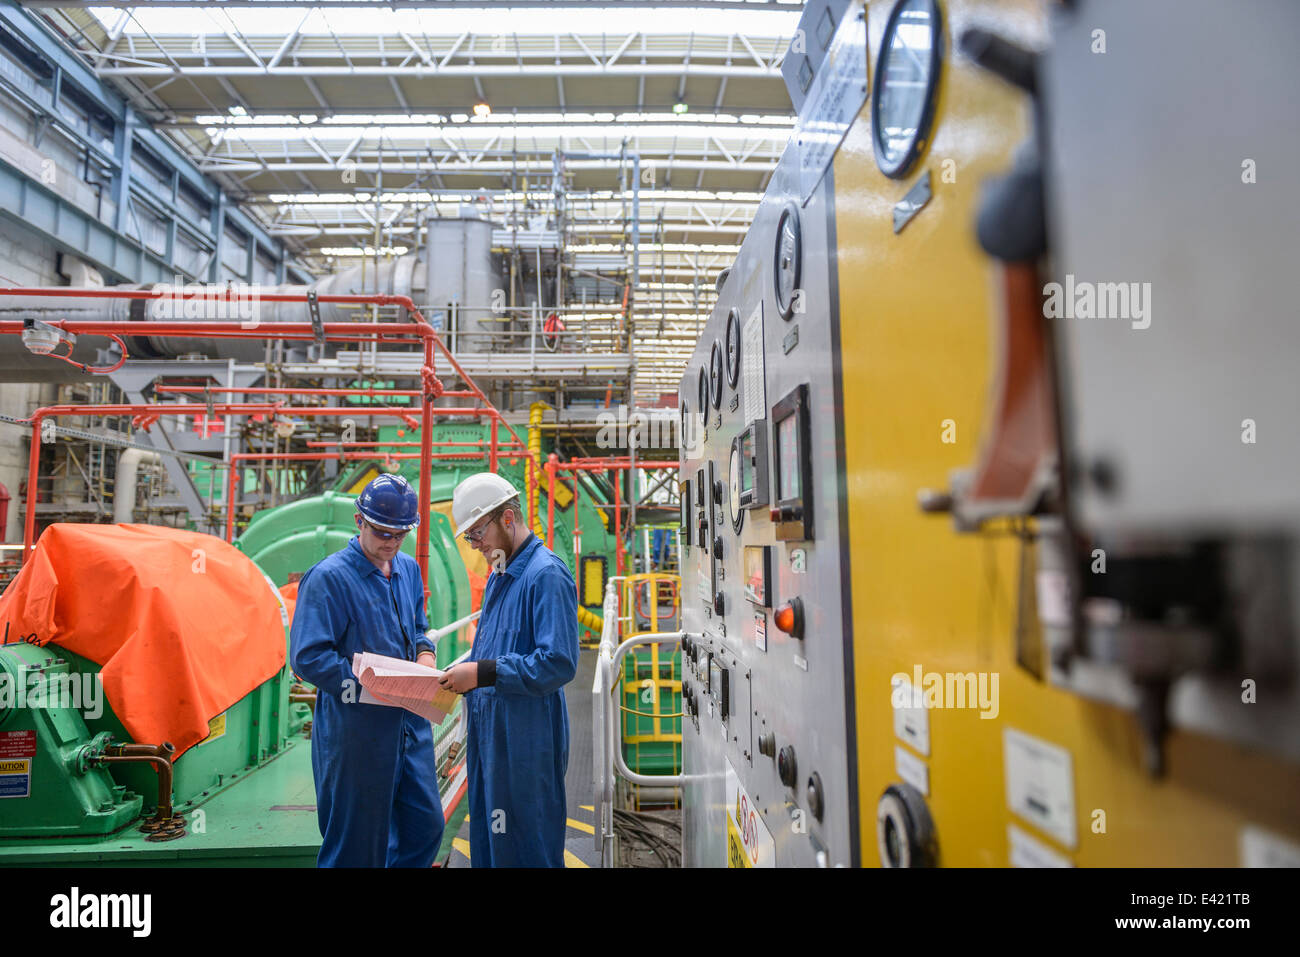 Networking Equipment Stock Photos 26416electricpanelpanelwiringjpg Engineers Discussing Paperwork During Power Station Outage Image